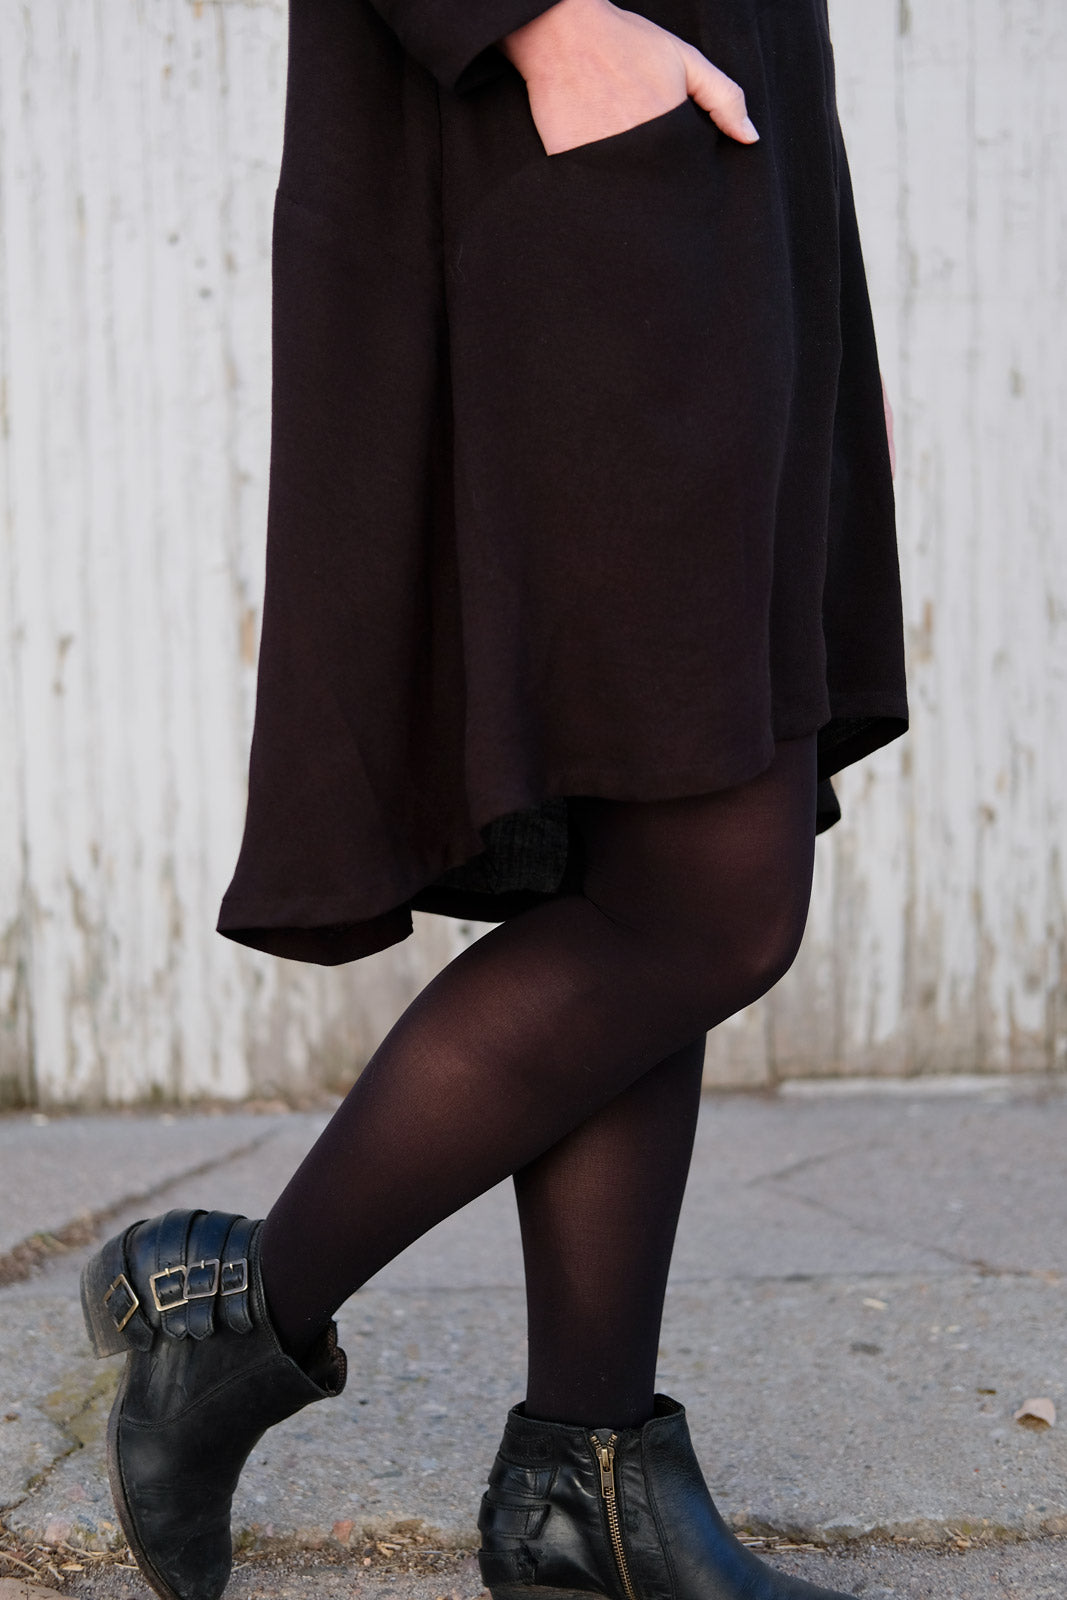 Jamie in her black crepe rayon Farrow from the waist down